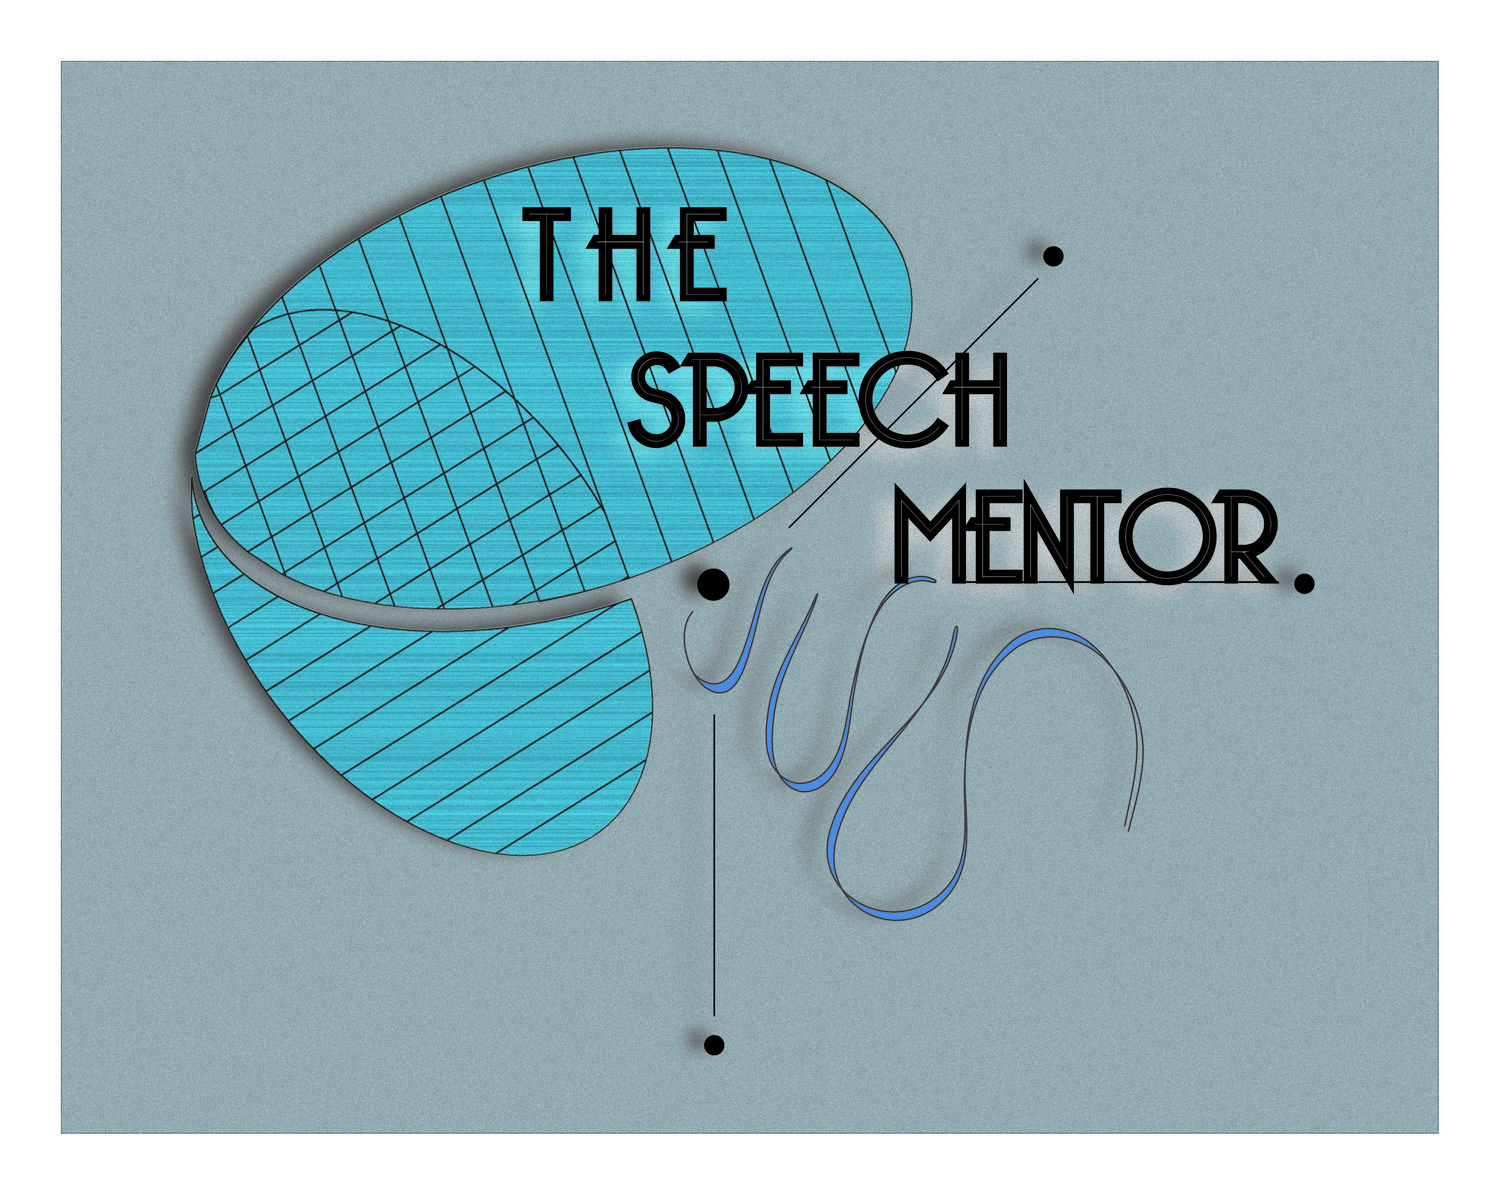 mentor speech